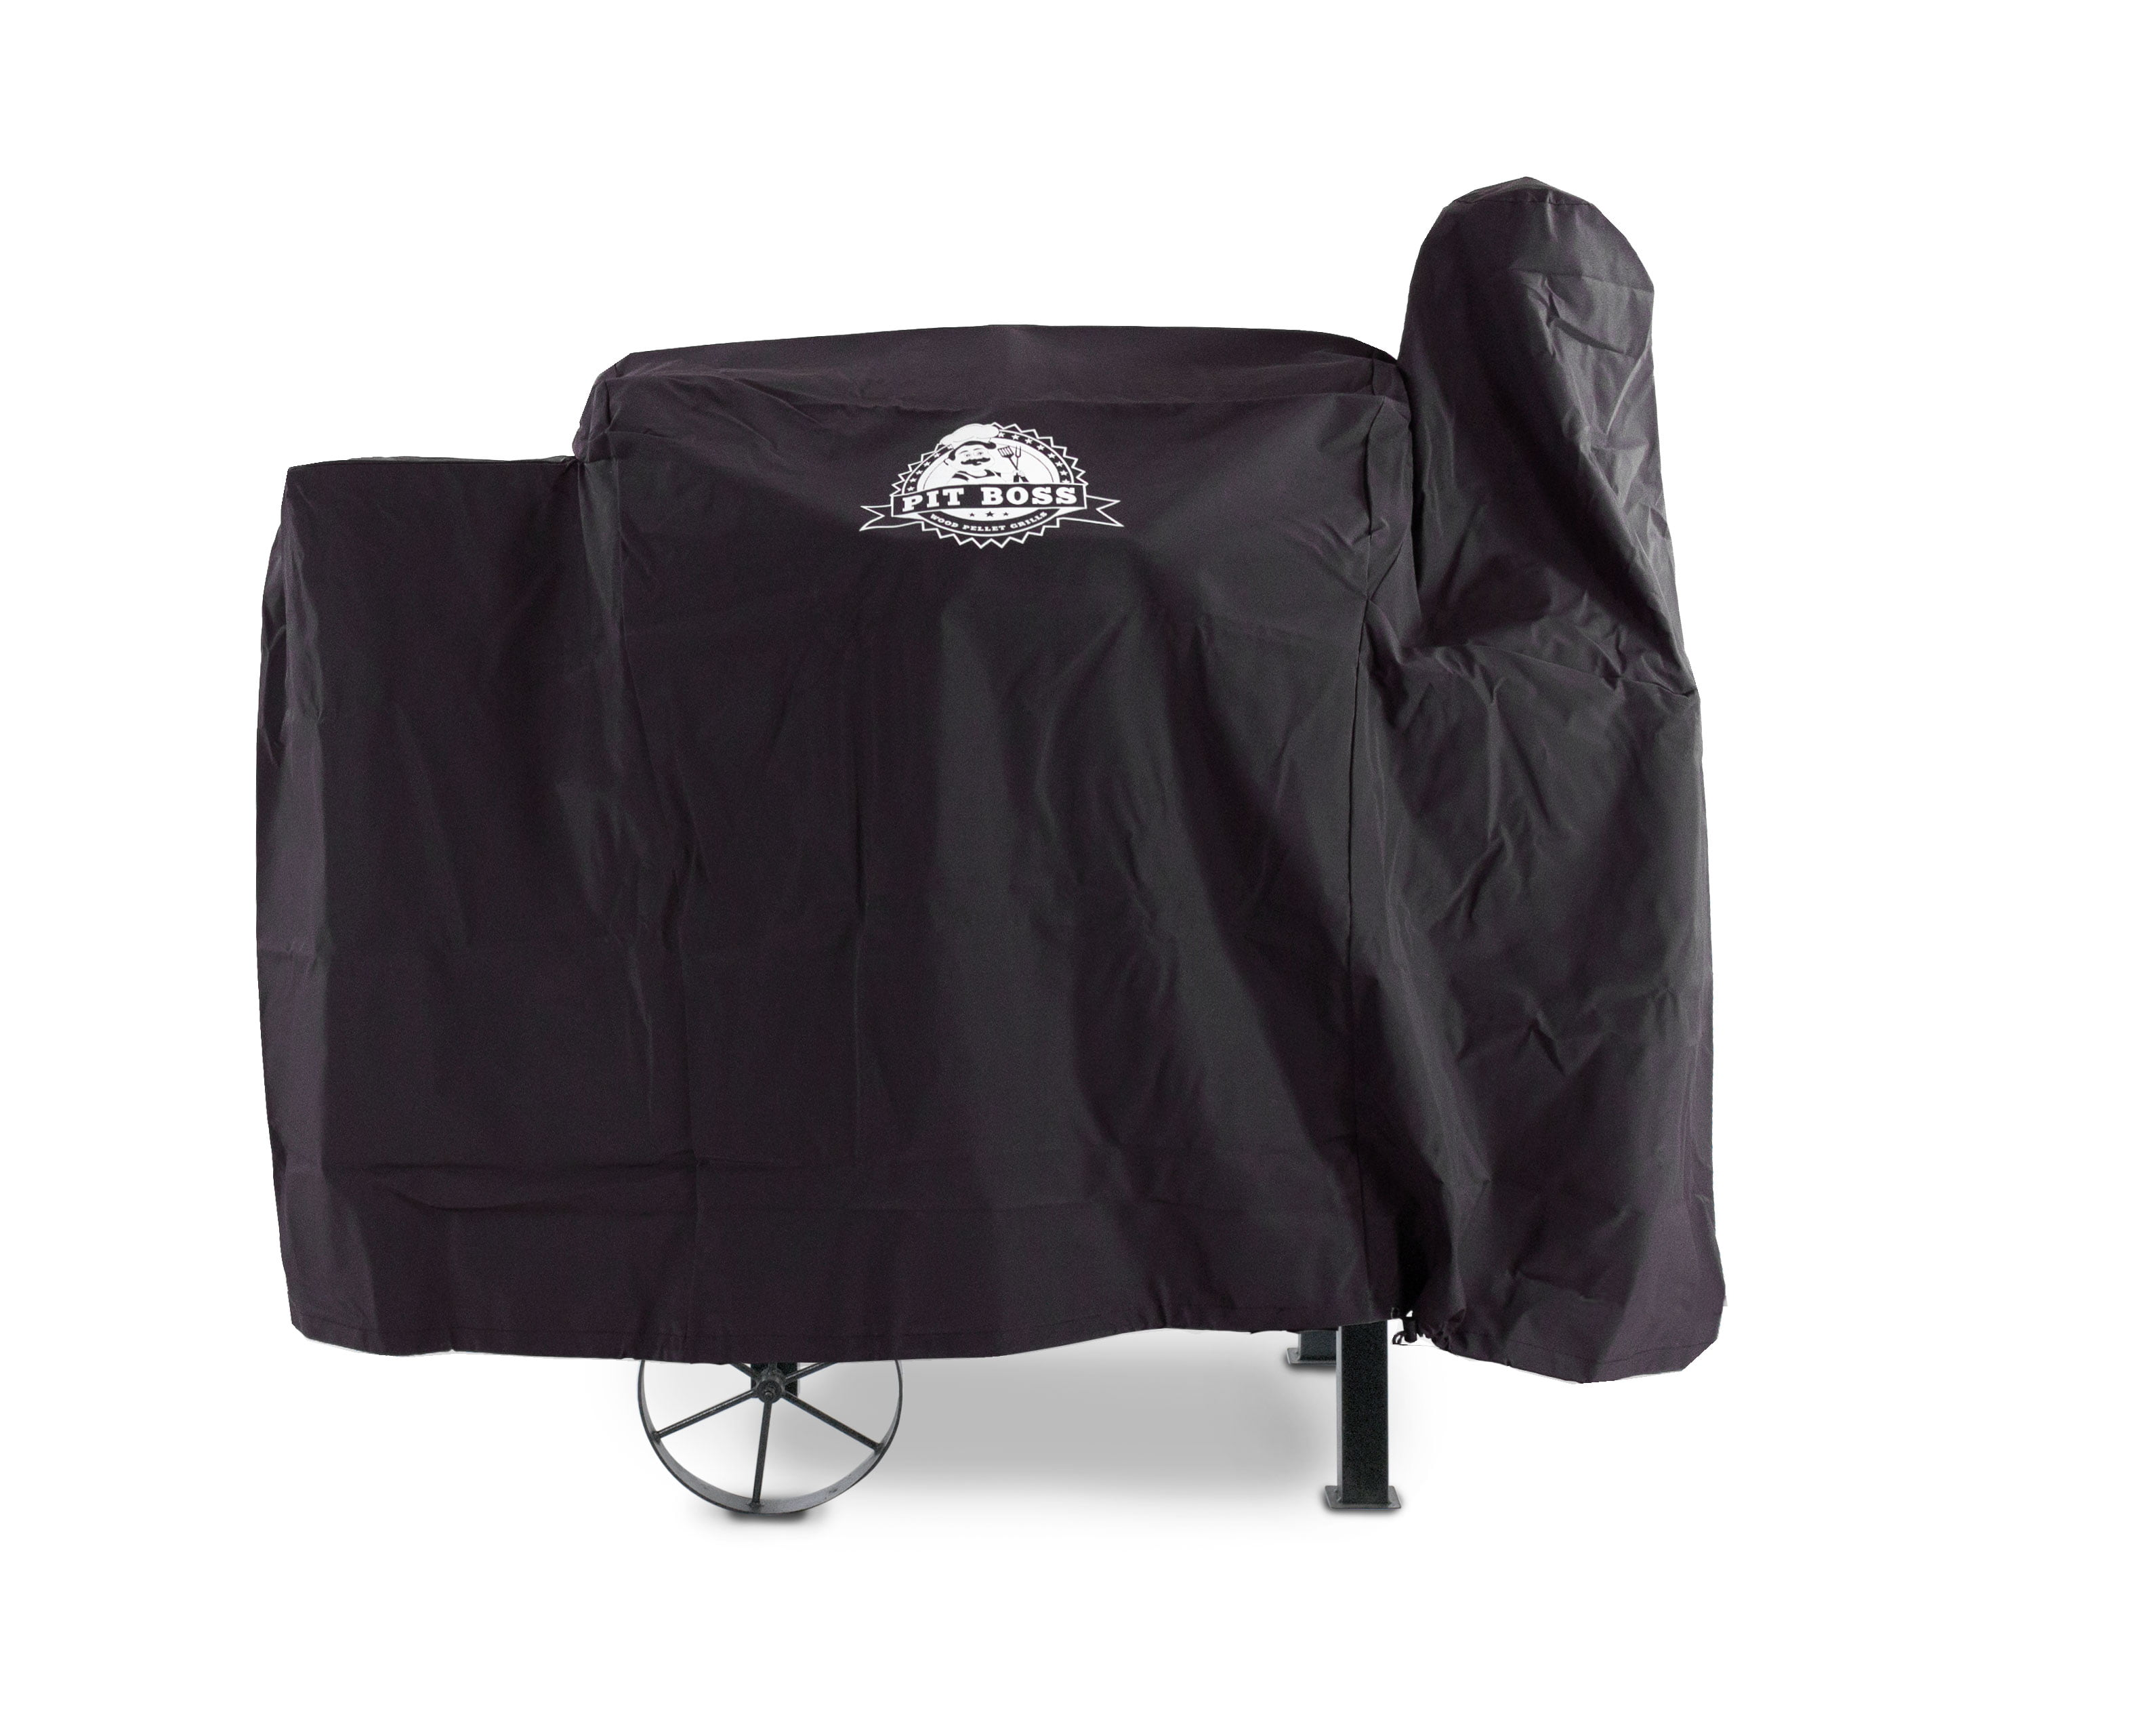 Pit Boss 820 Grill Cover by Grill Covers